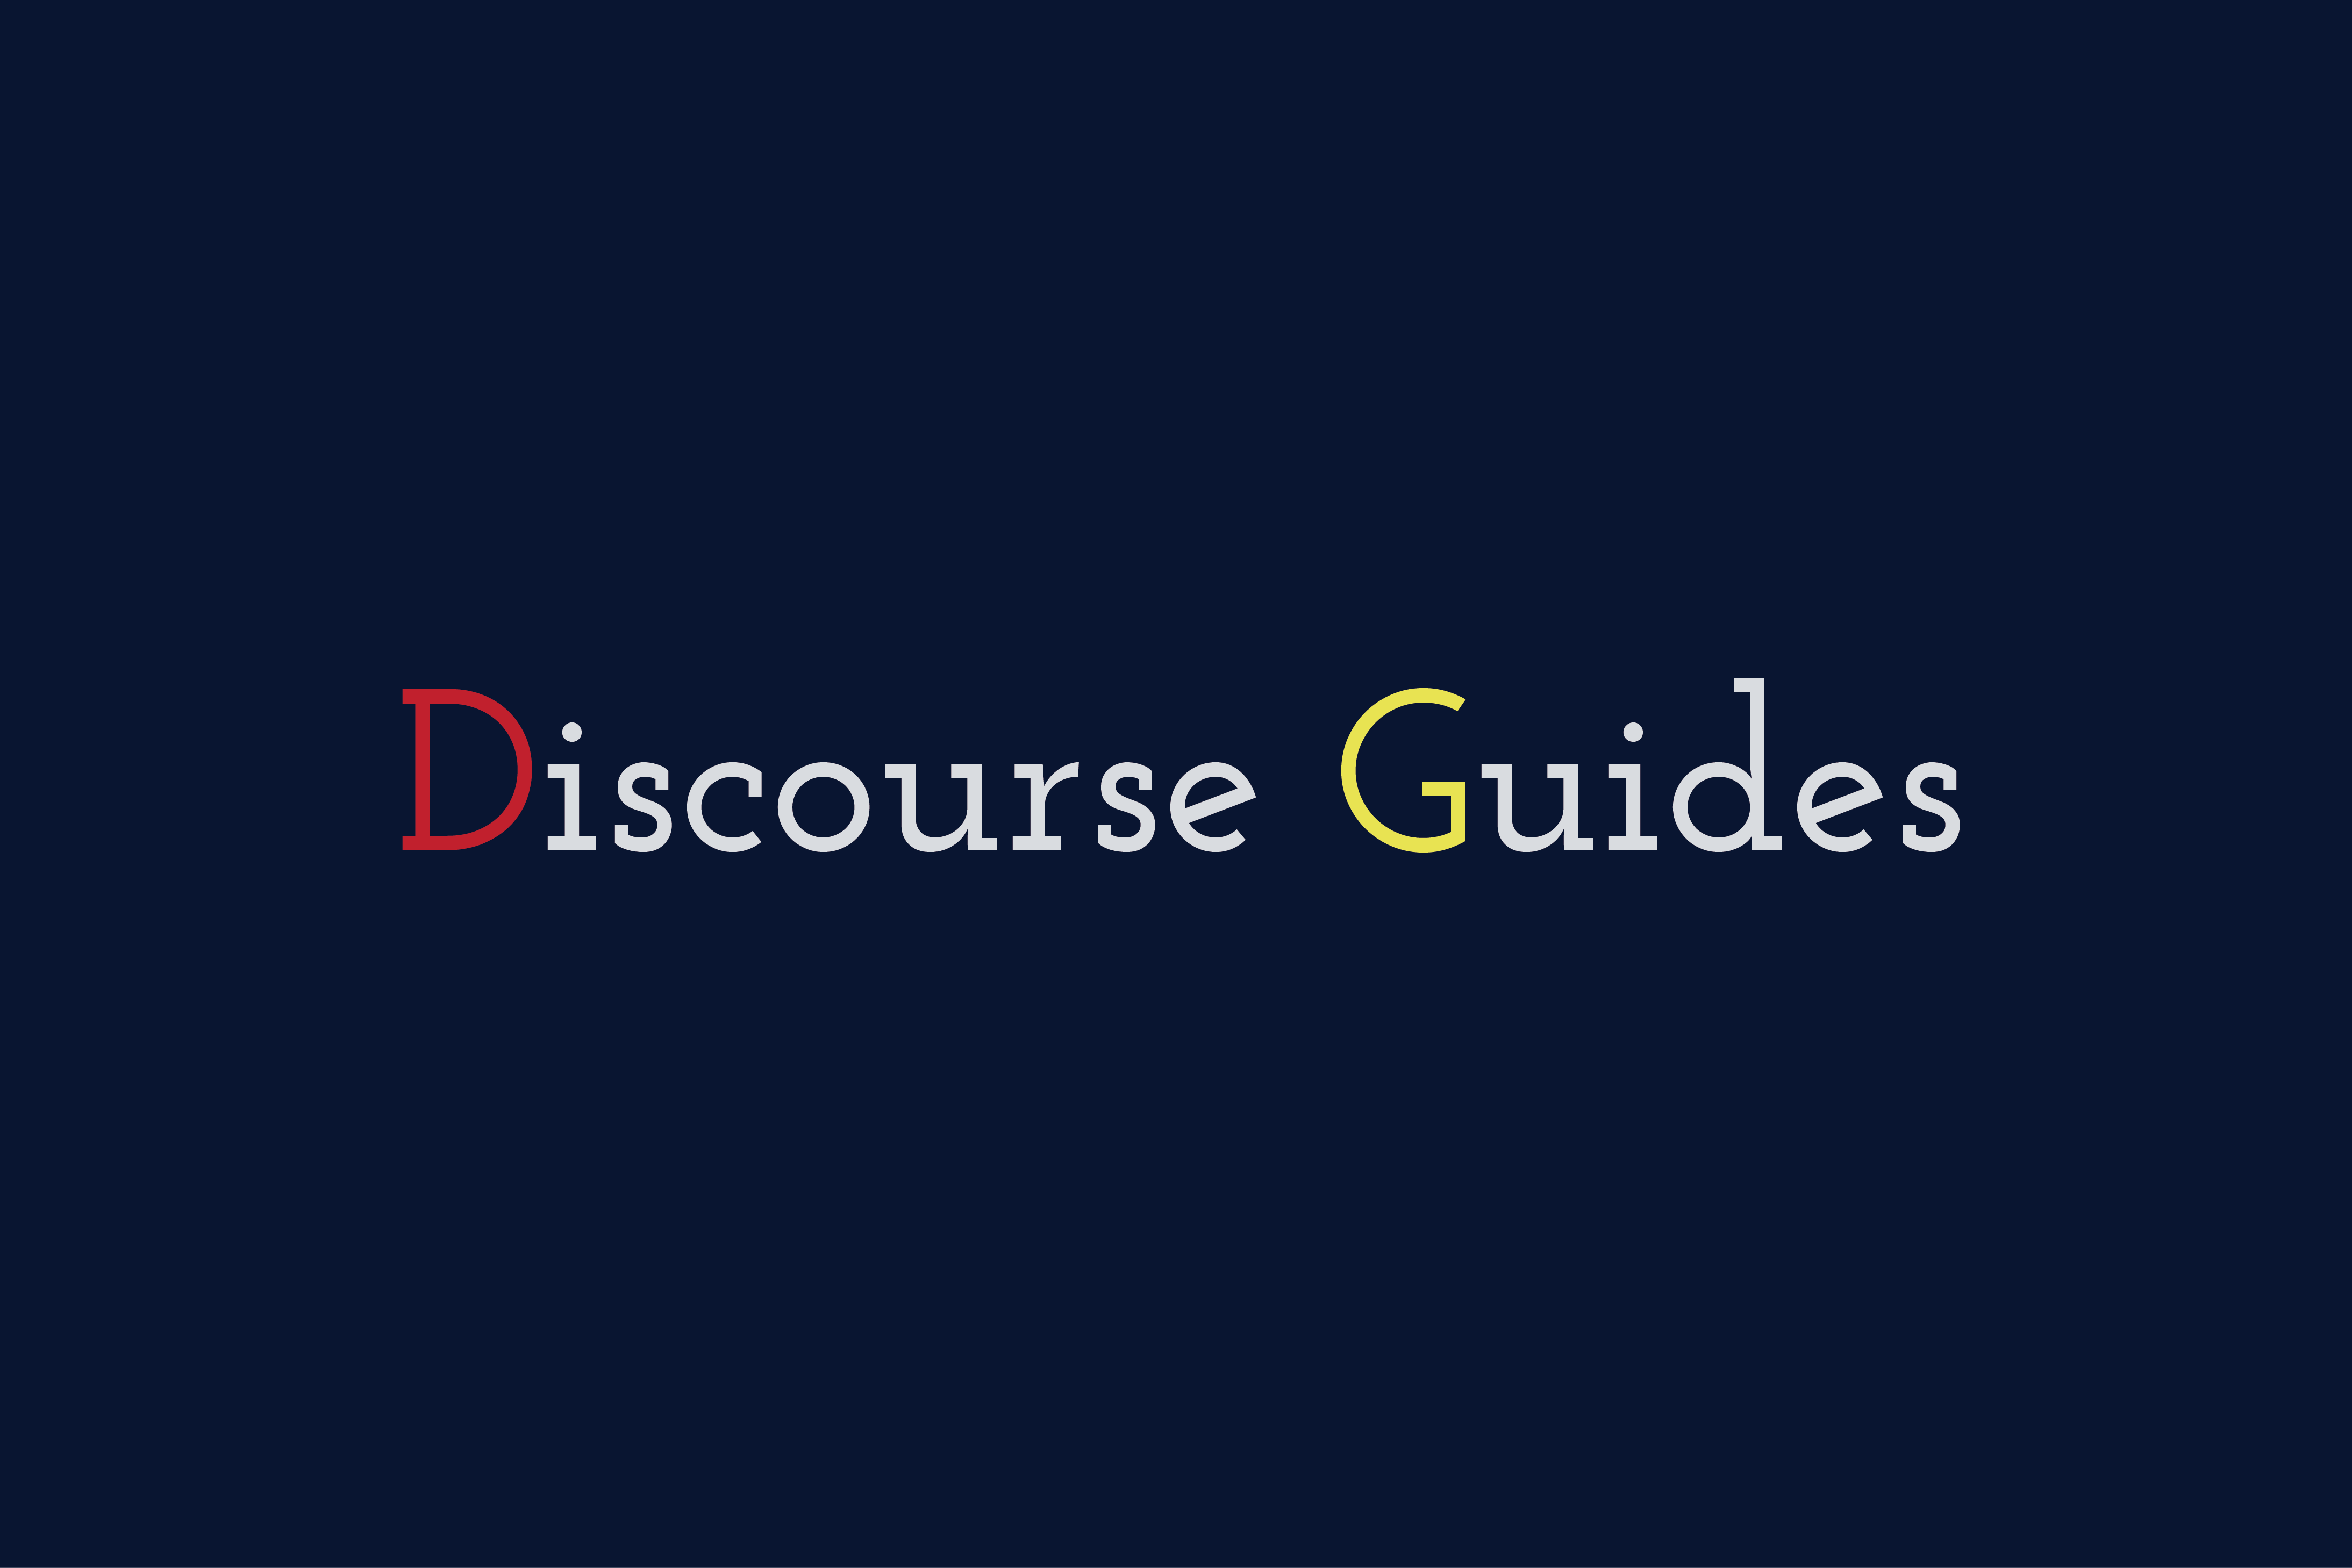 『Discourse Guides』のリンク